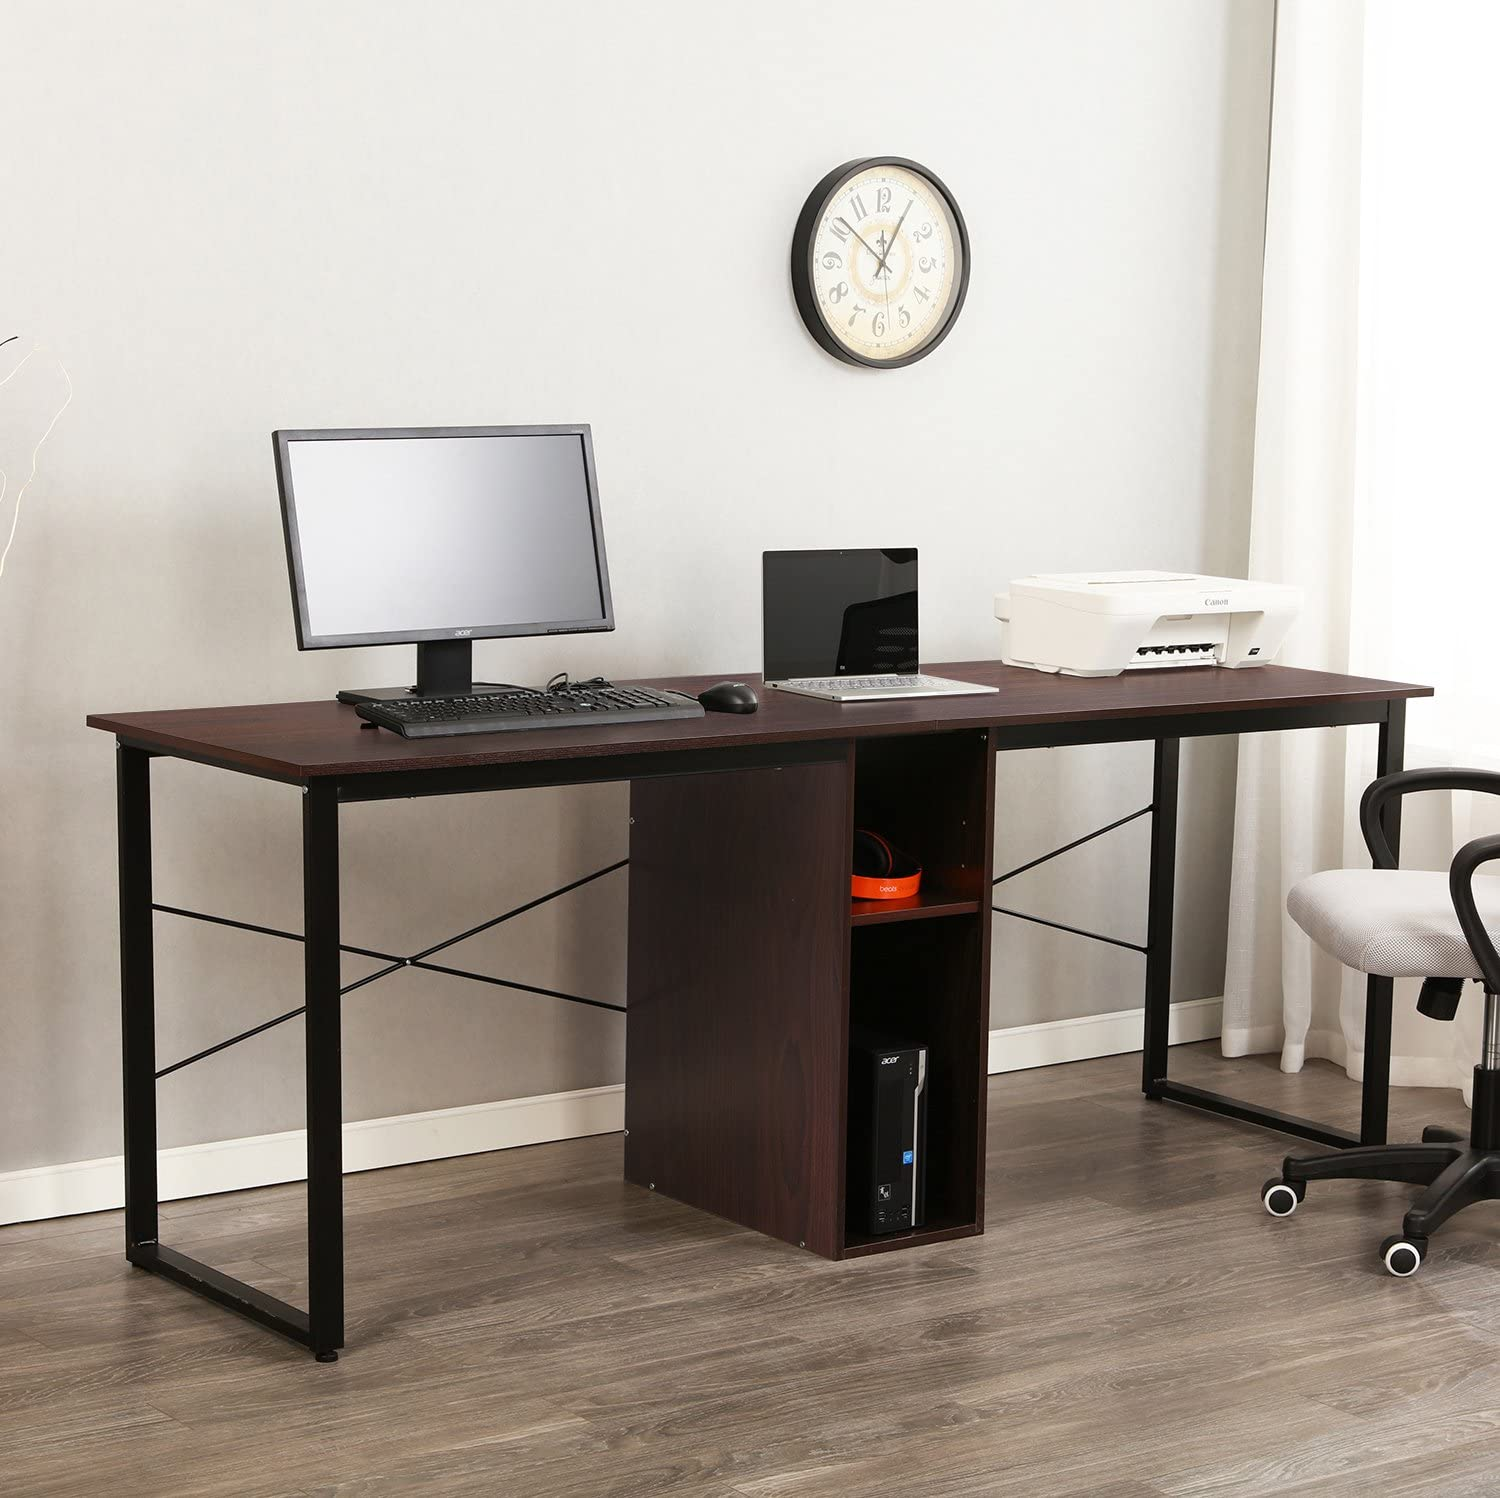 Amazon Com Sogesfurniture Large Double Workstation 78 Inches Computer Desk Dual Desk Home Office Desk 2 Person Computer Desk Computer Desks With Storage Walnut Bhus Hz Kitchen Dining